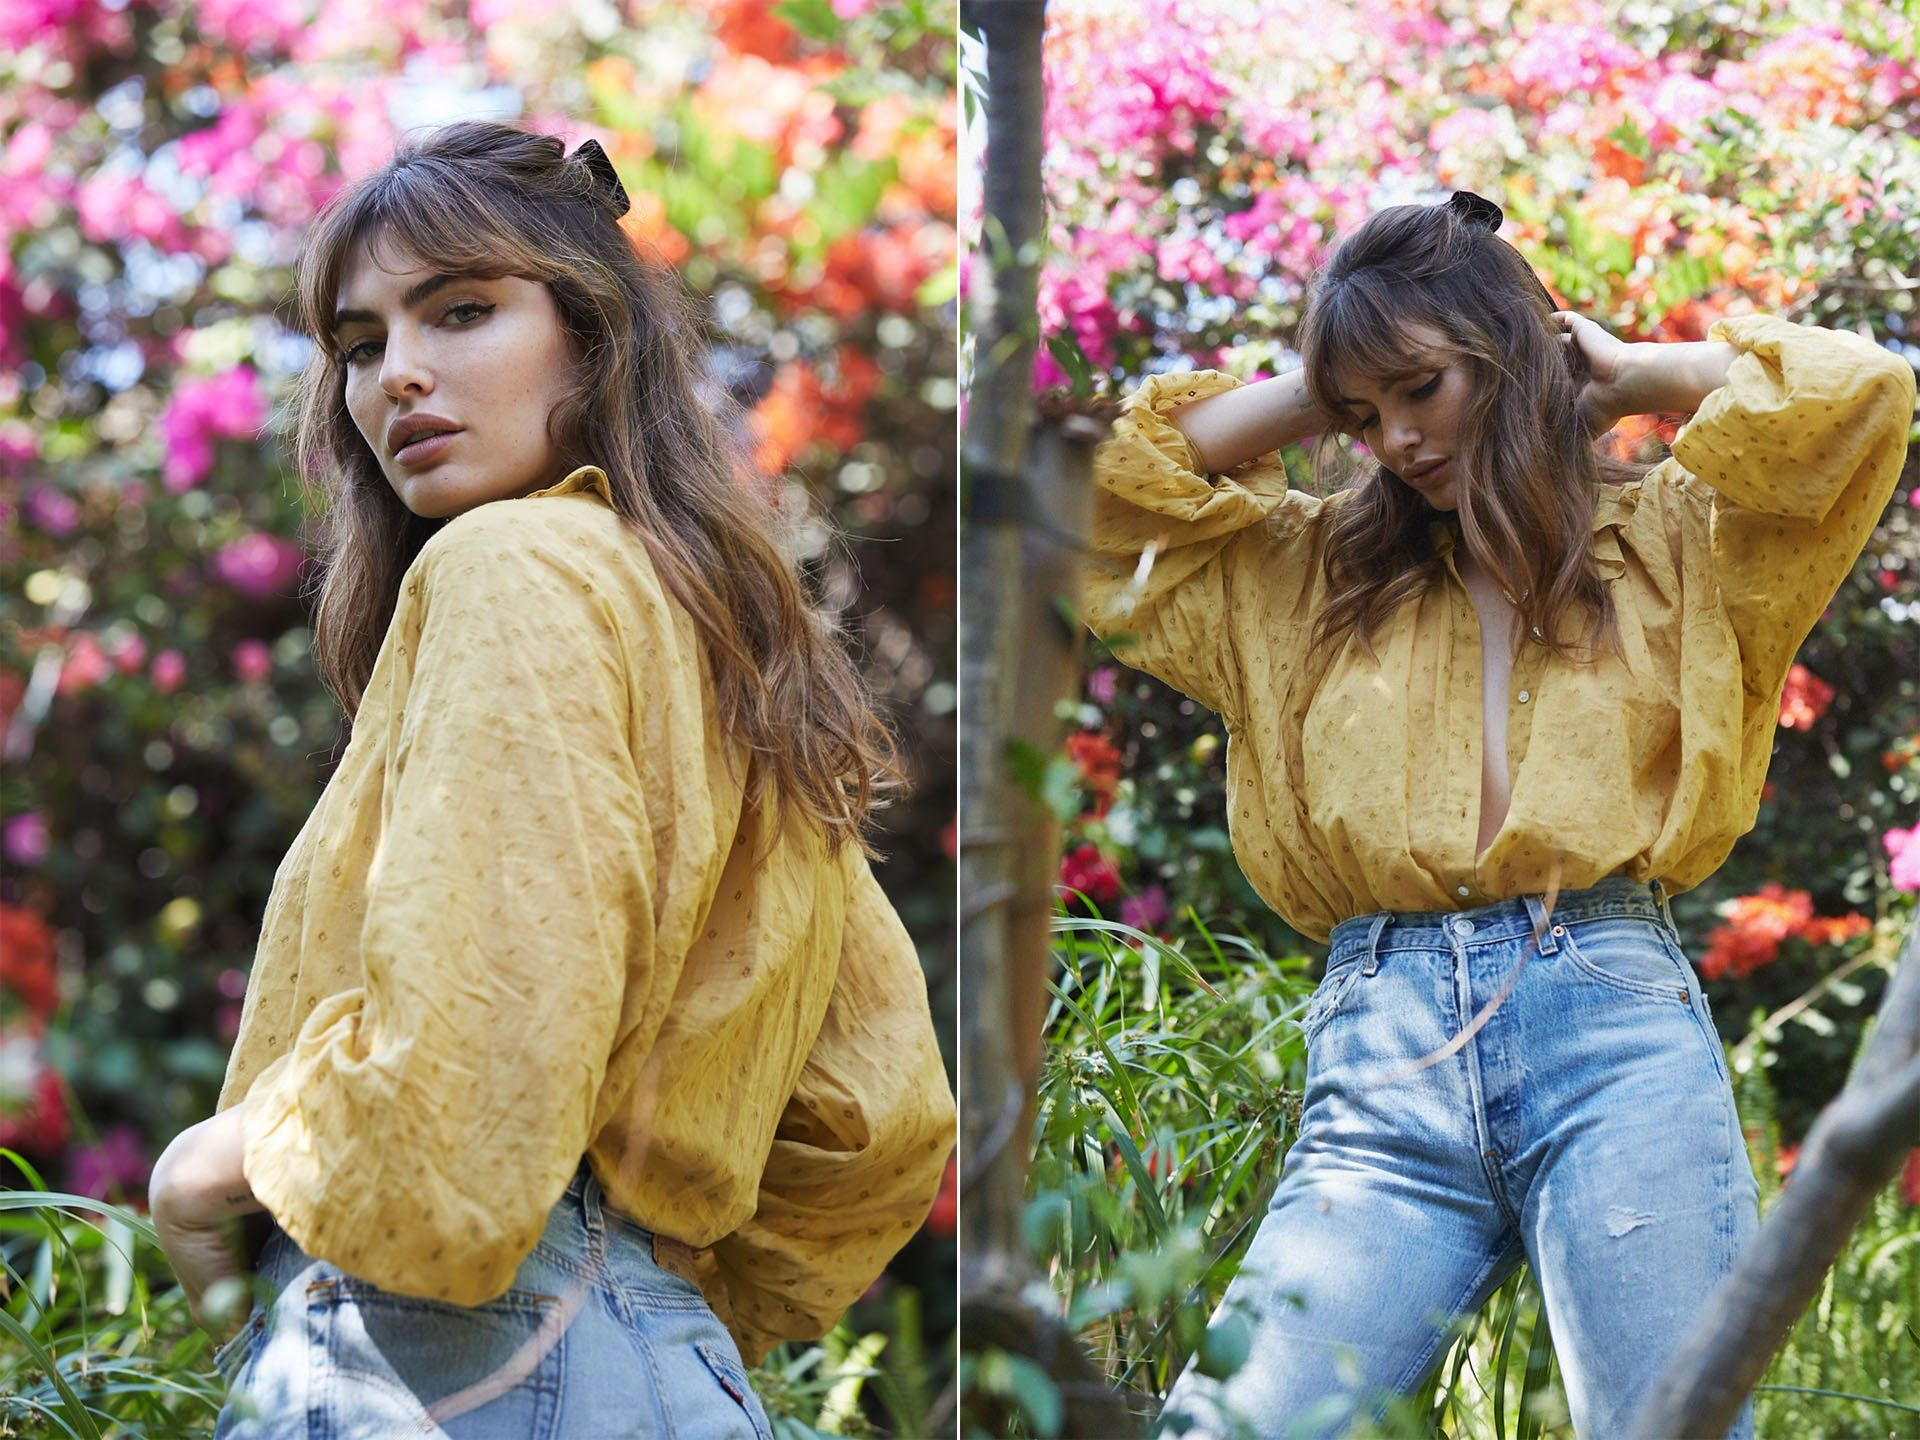 Photo of Sweet Muse Alyssa Miller in her City Farm